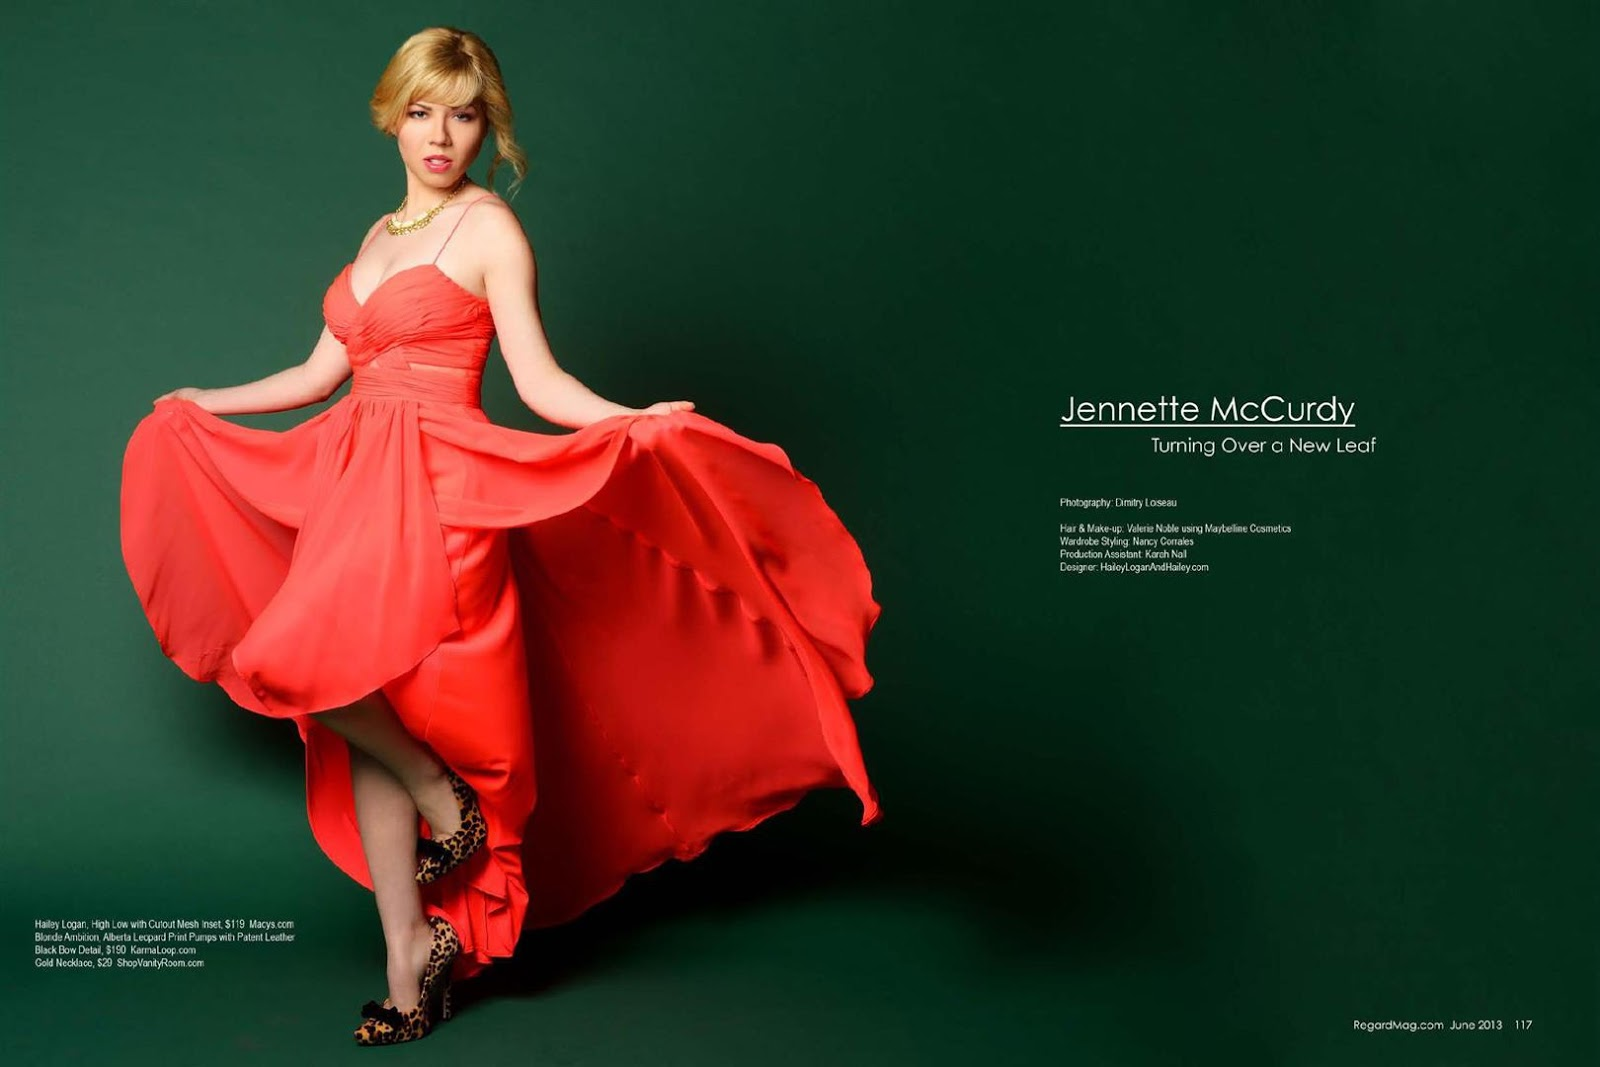 Jennette mccurdy date of birth in Melbourne